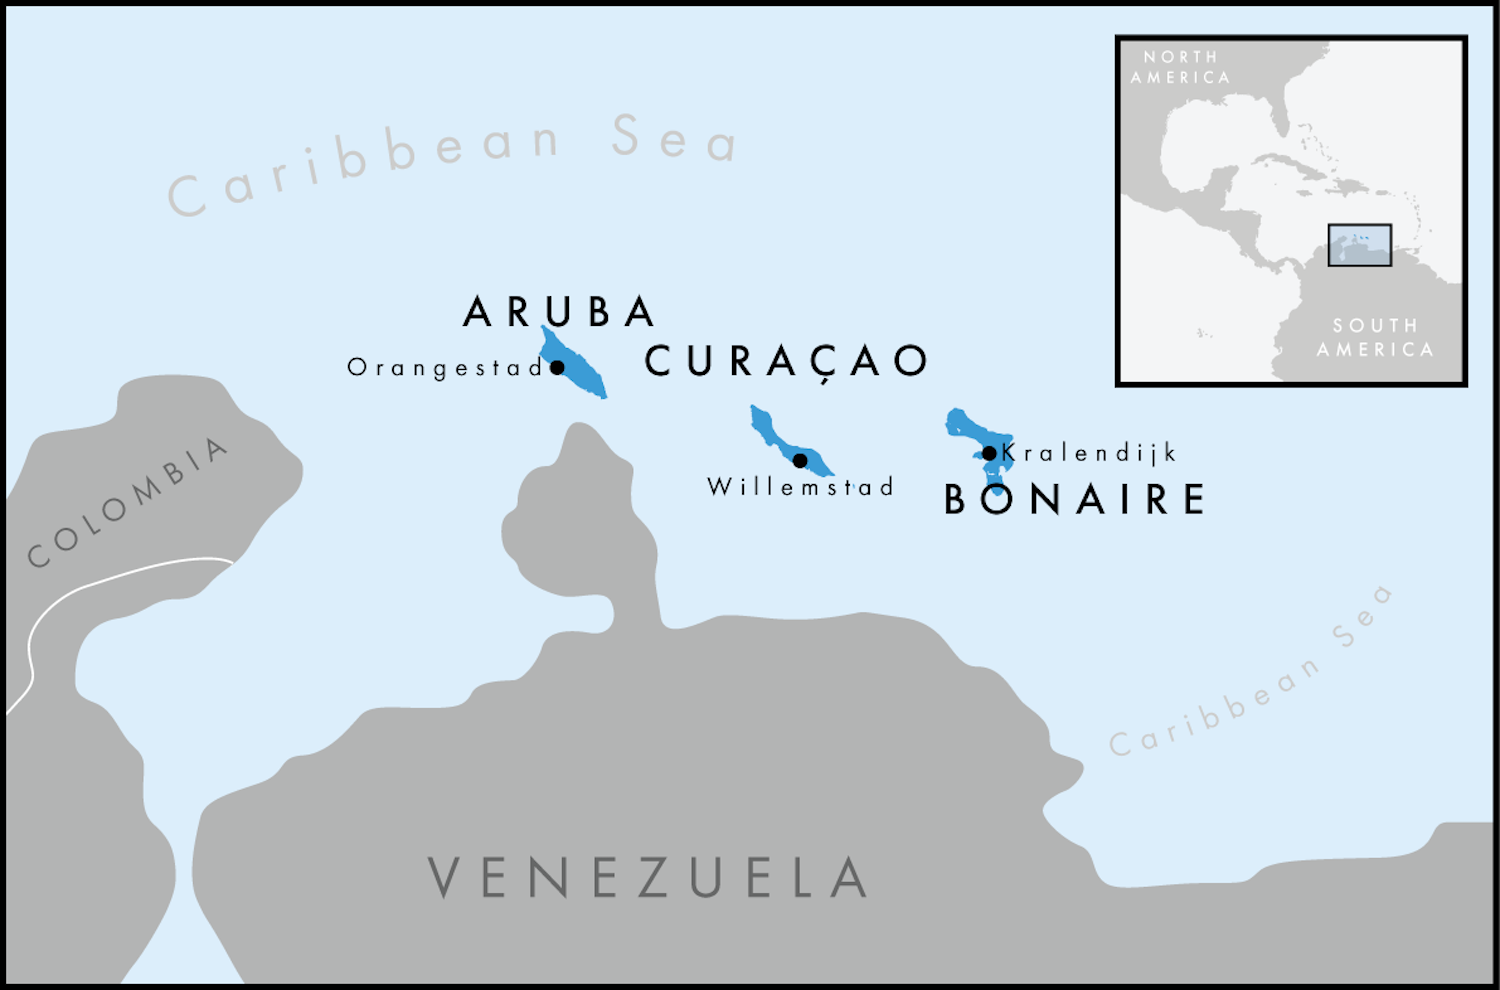 Map of Aruba, Bonaire & Curacao